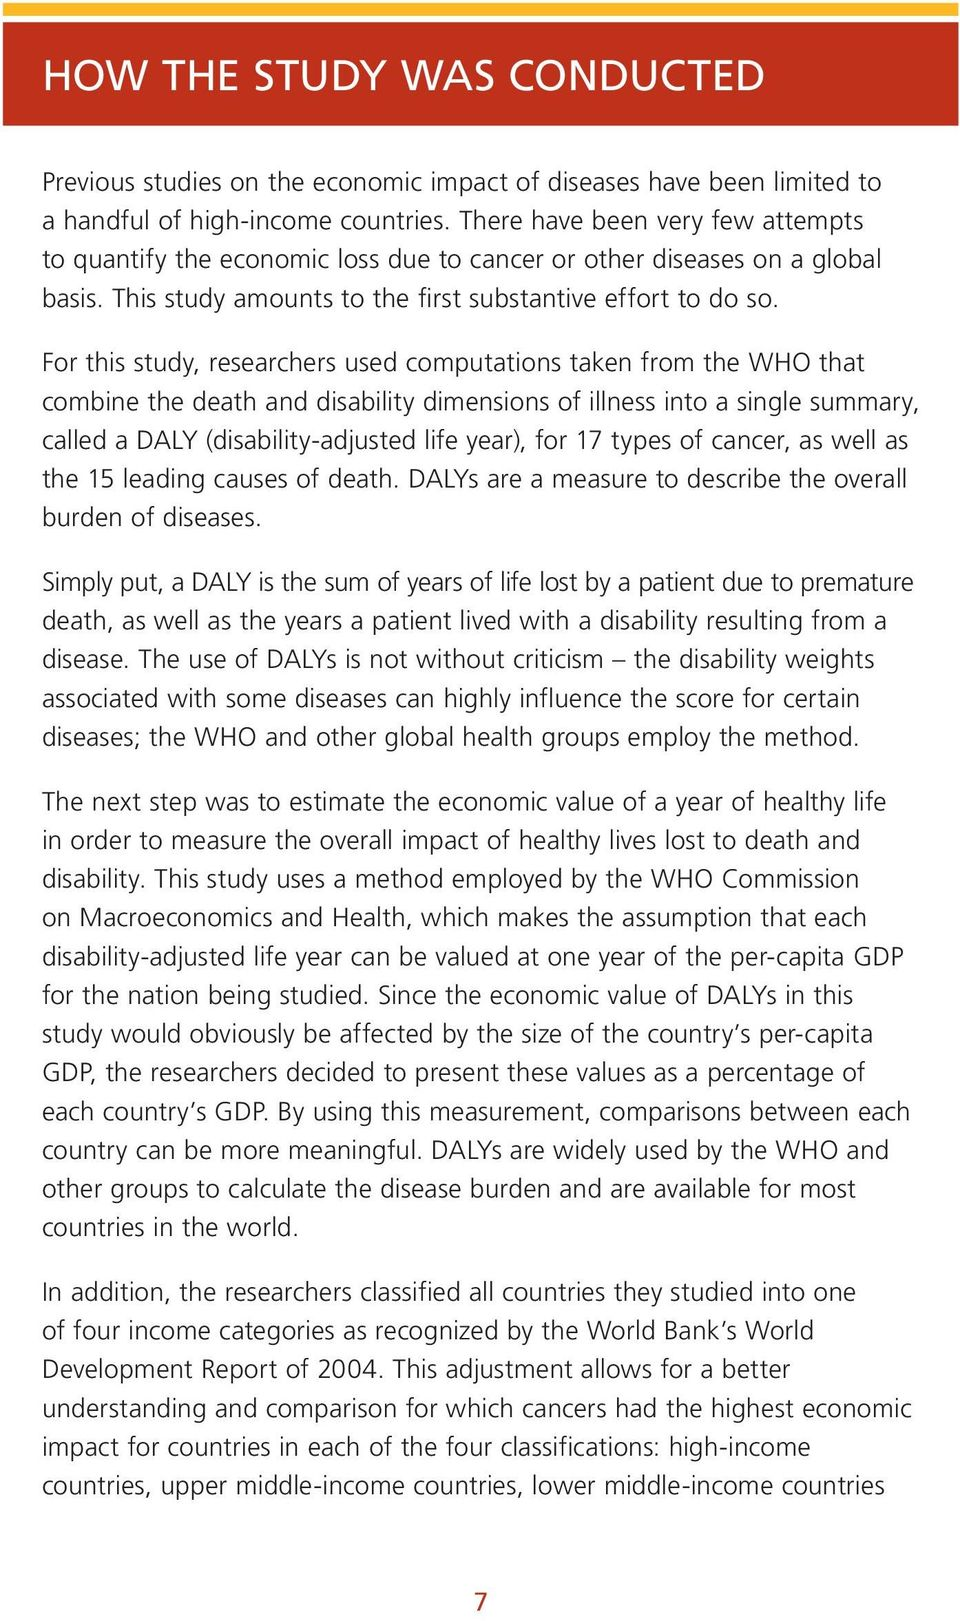 For this study, researchers used computations taken from the WHO that combine the death and disability dimensions of illness into a single summary, called a DALY (disability-adjusted life year), for